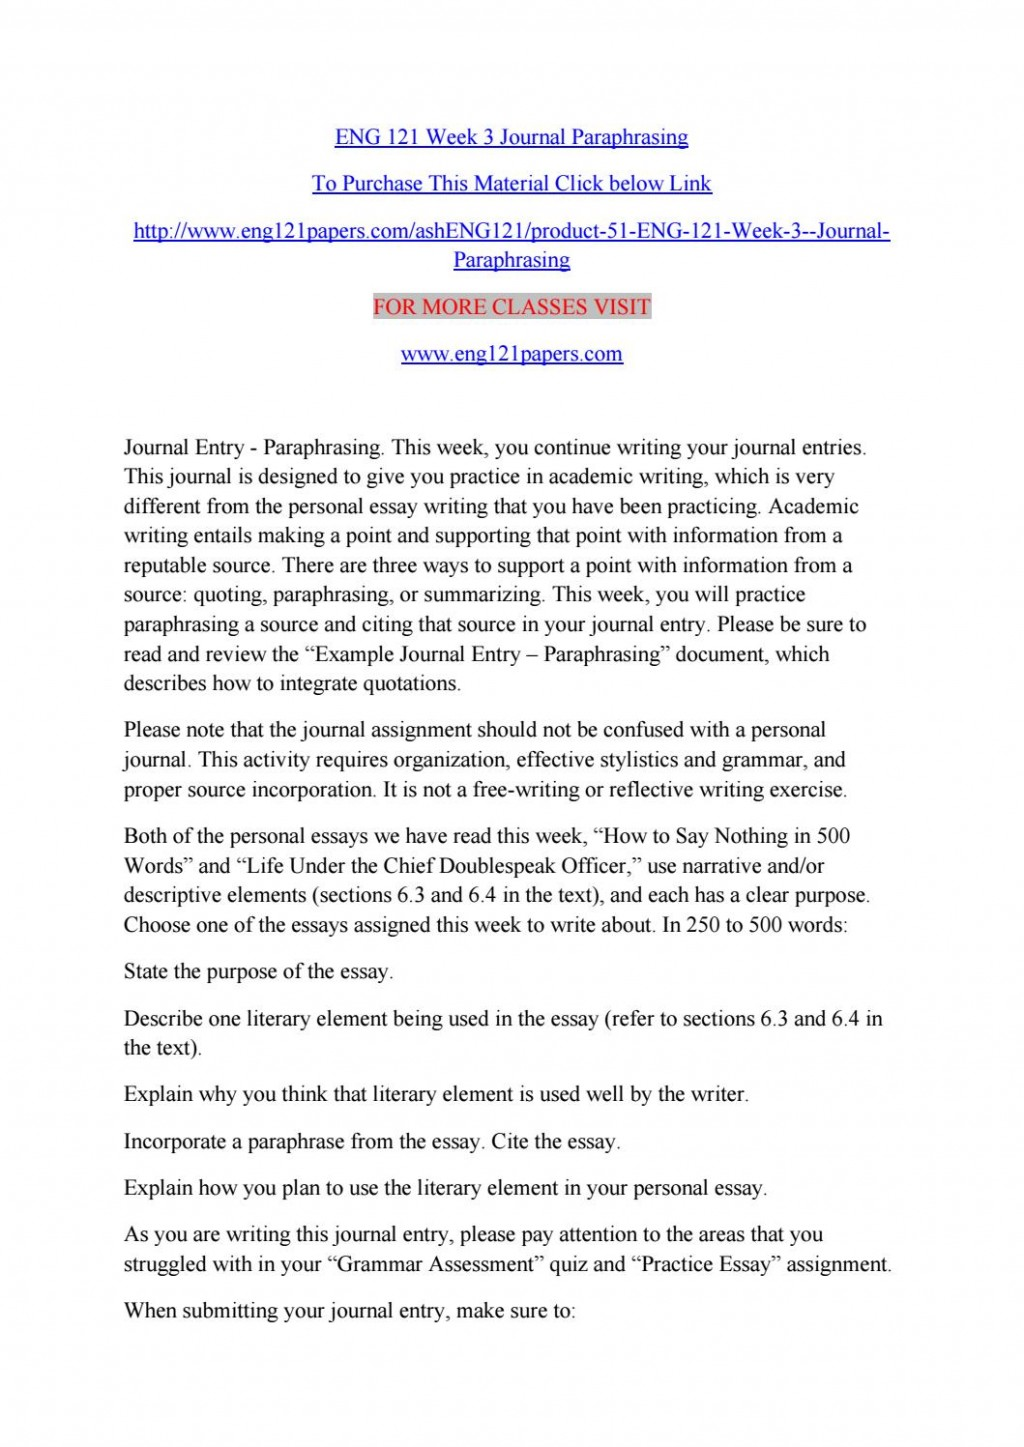 015 Paraphrase Essay Page 1 Stirring Means On Criticism Paraphrasing Topics Large